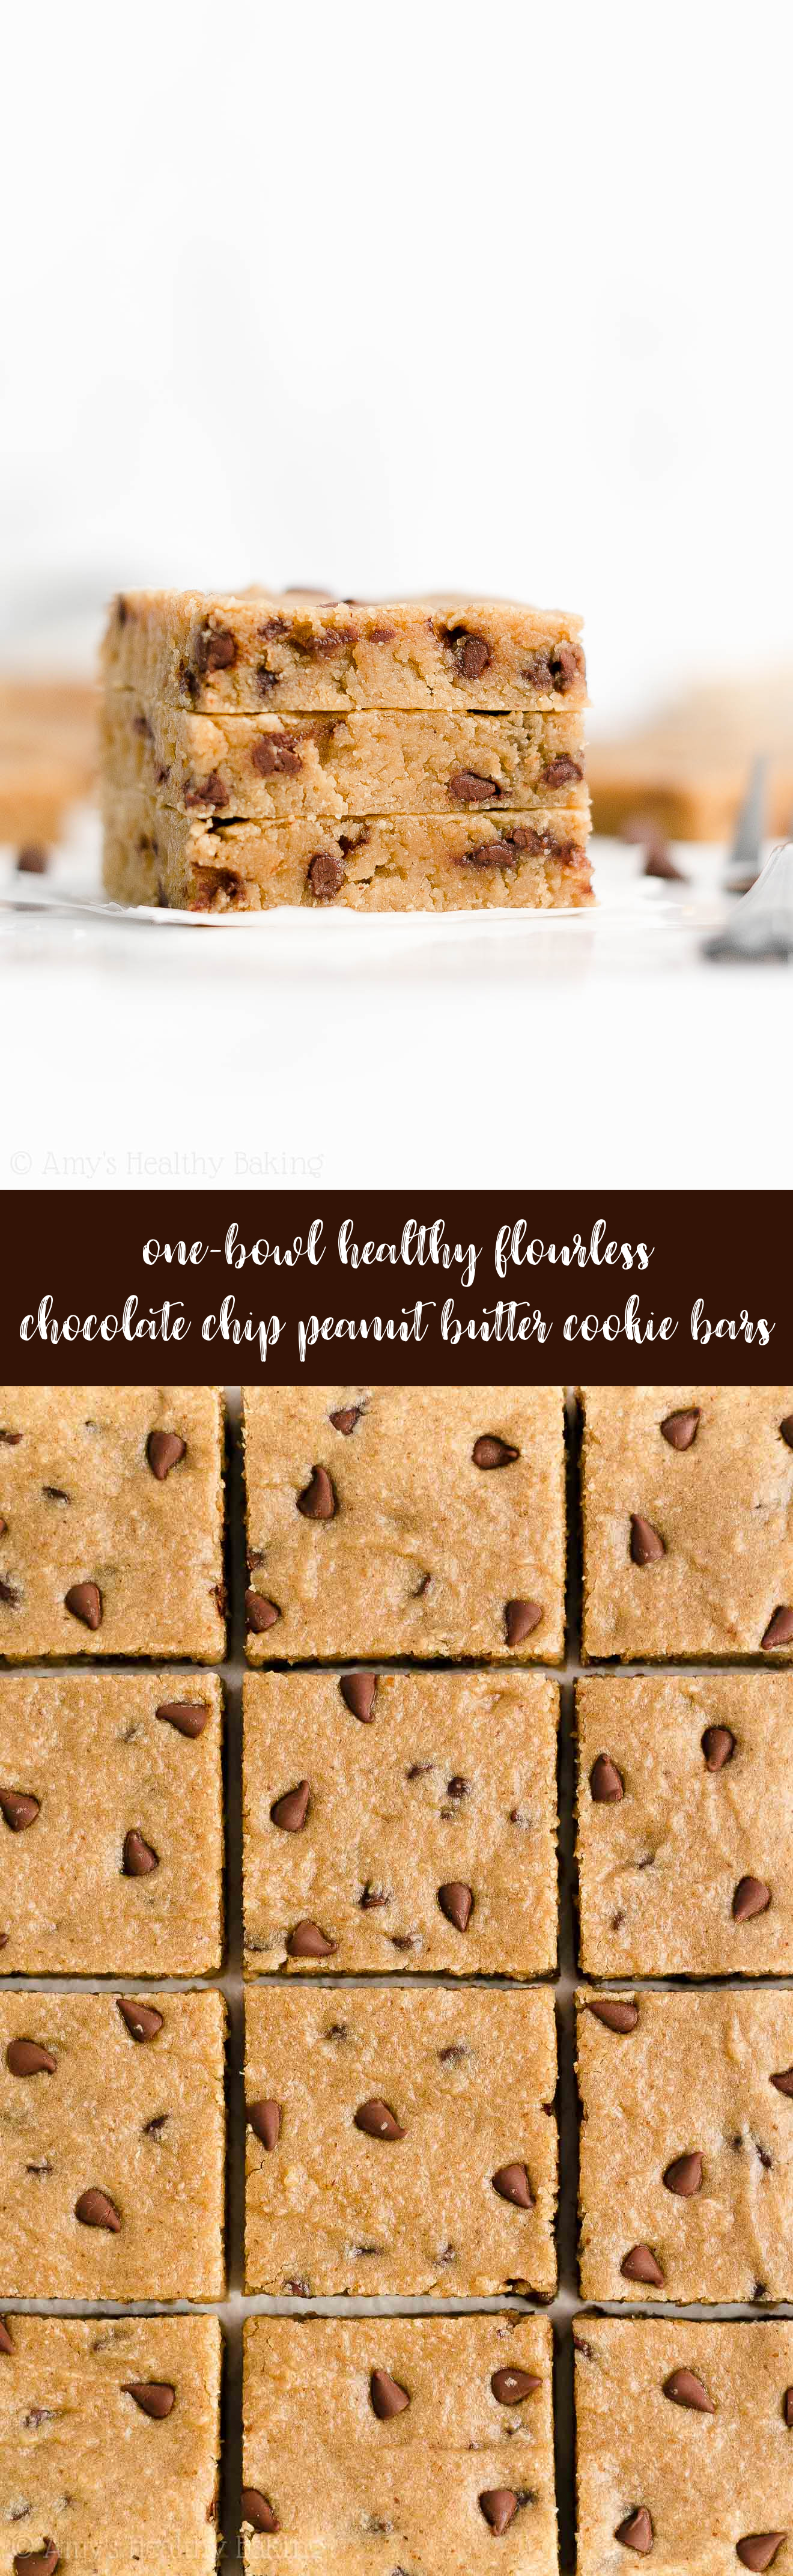 Best Easy Healthy Gluten Free Vegan Flourless Chocolate Chip Peanut Butter Cookie Bars